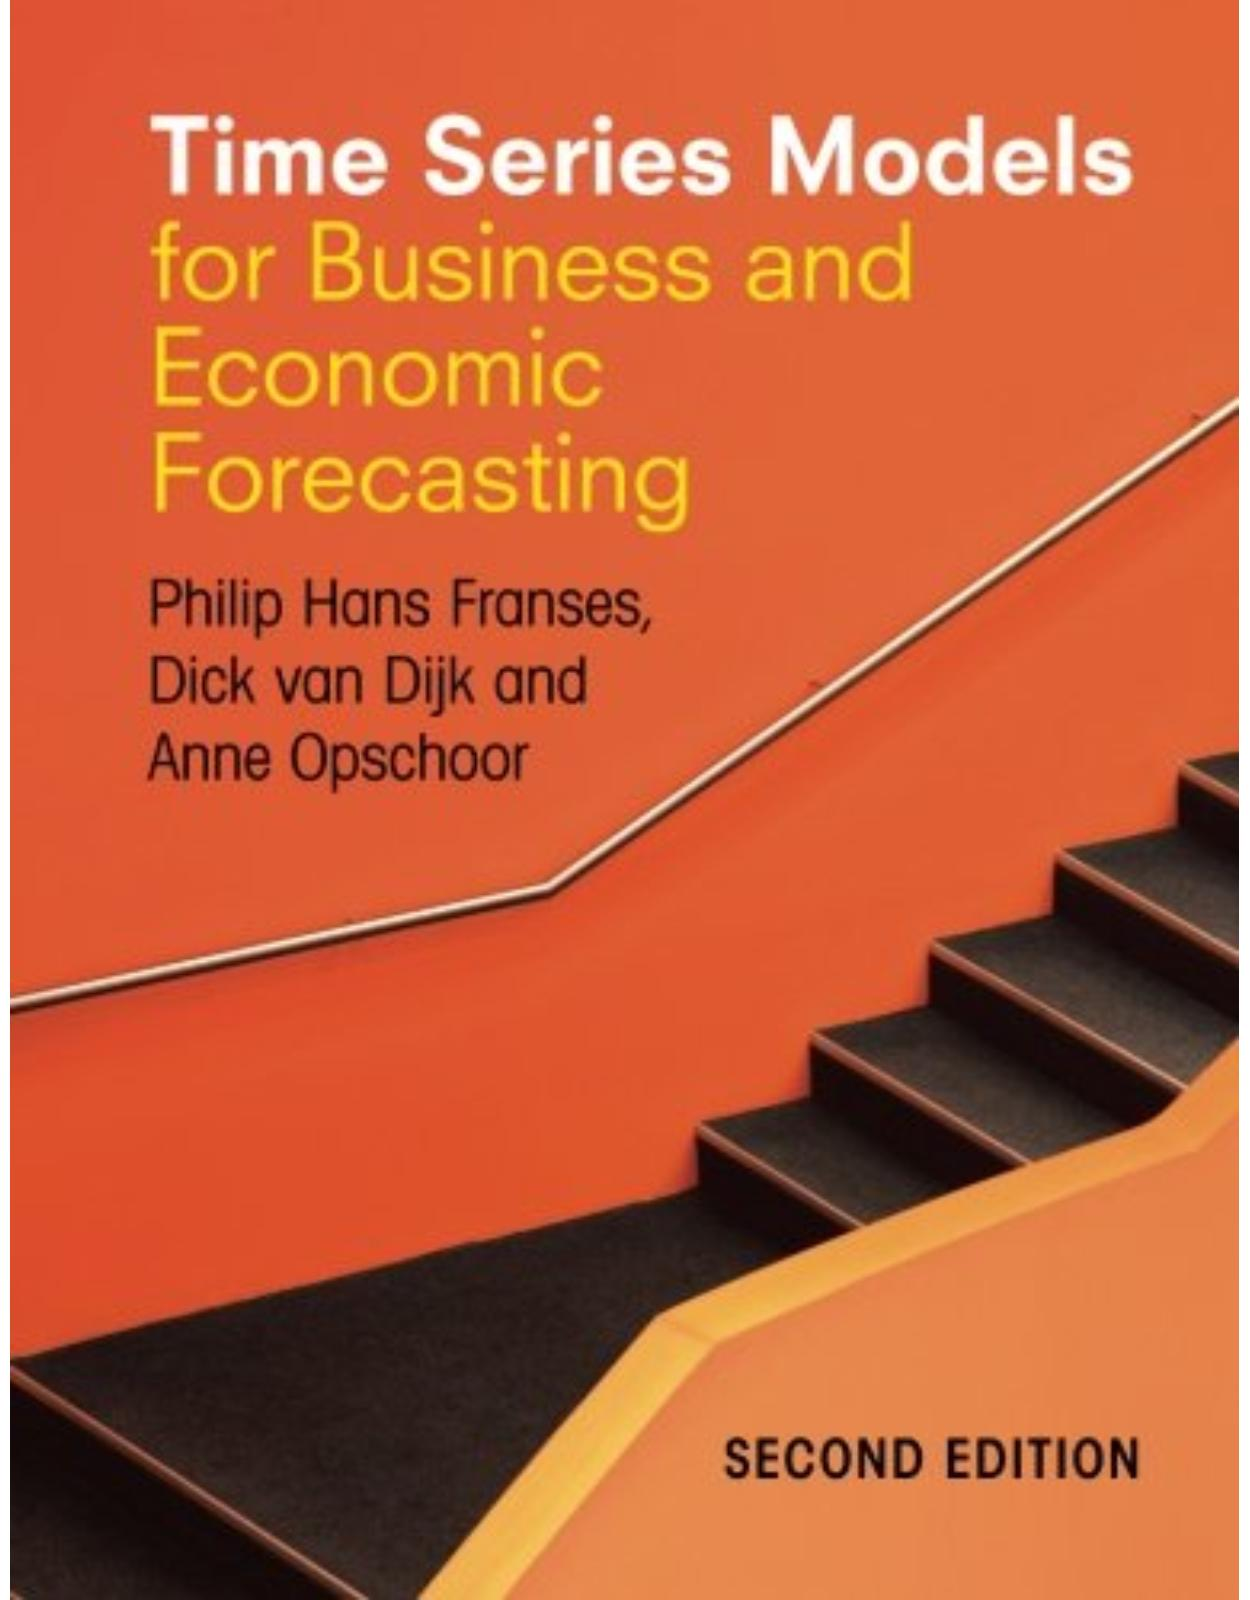 Time Series Models for Business and Economic Forecasting